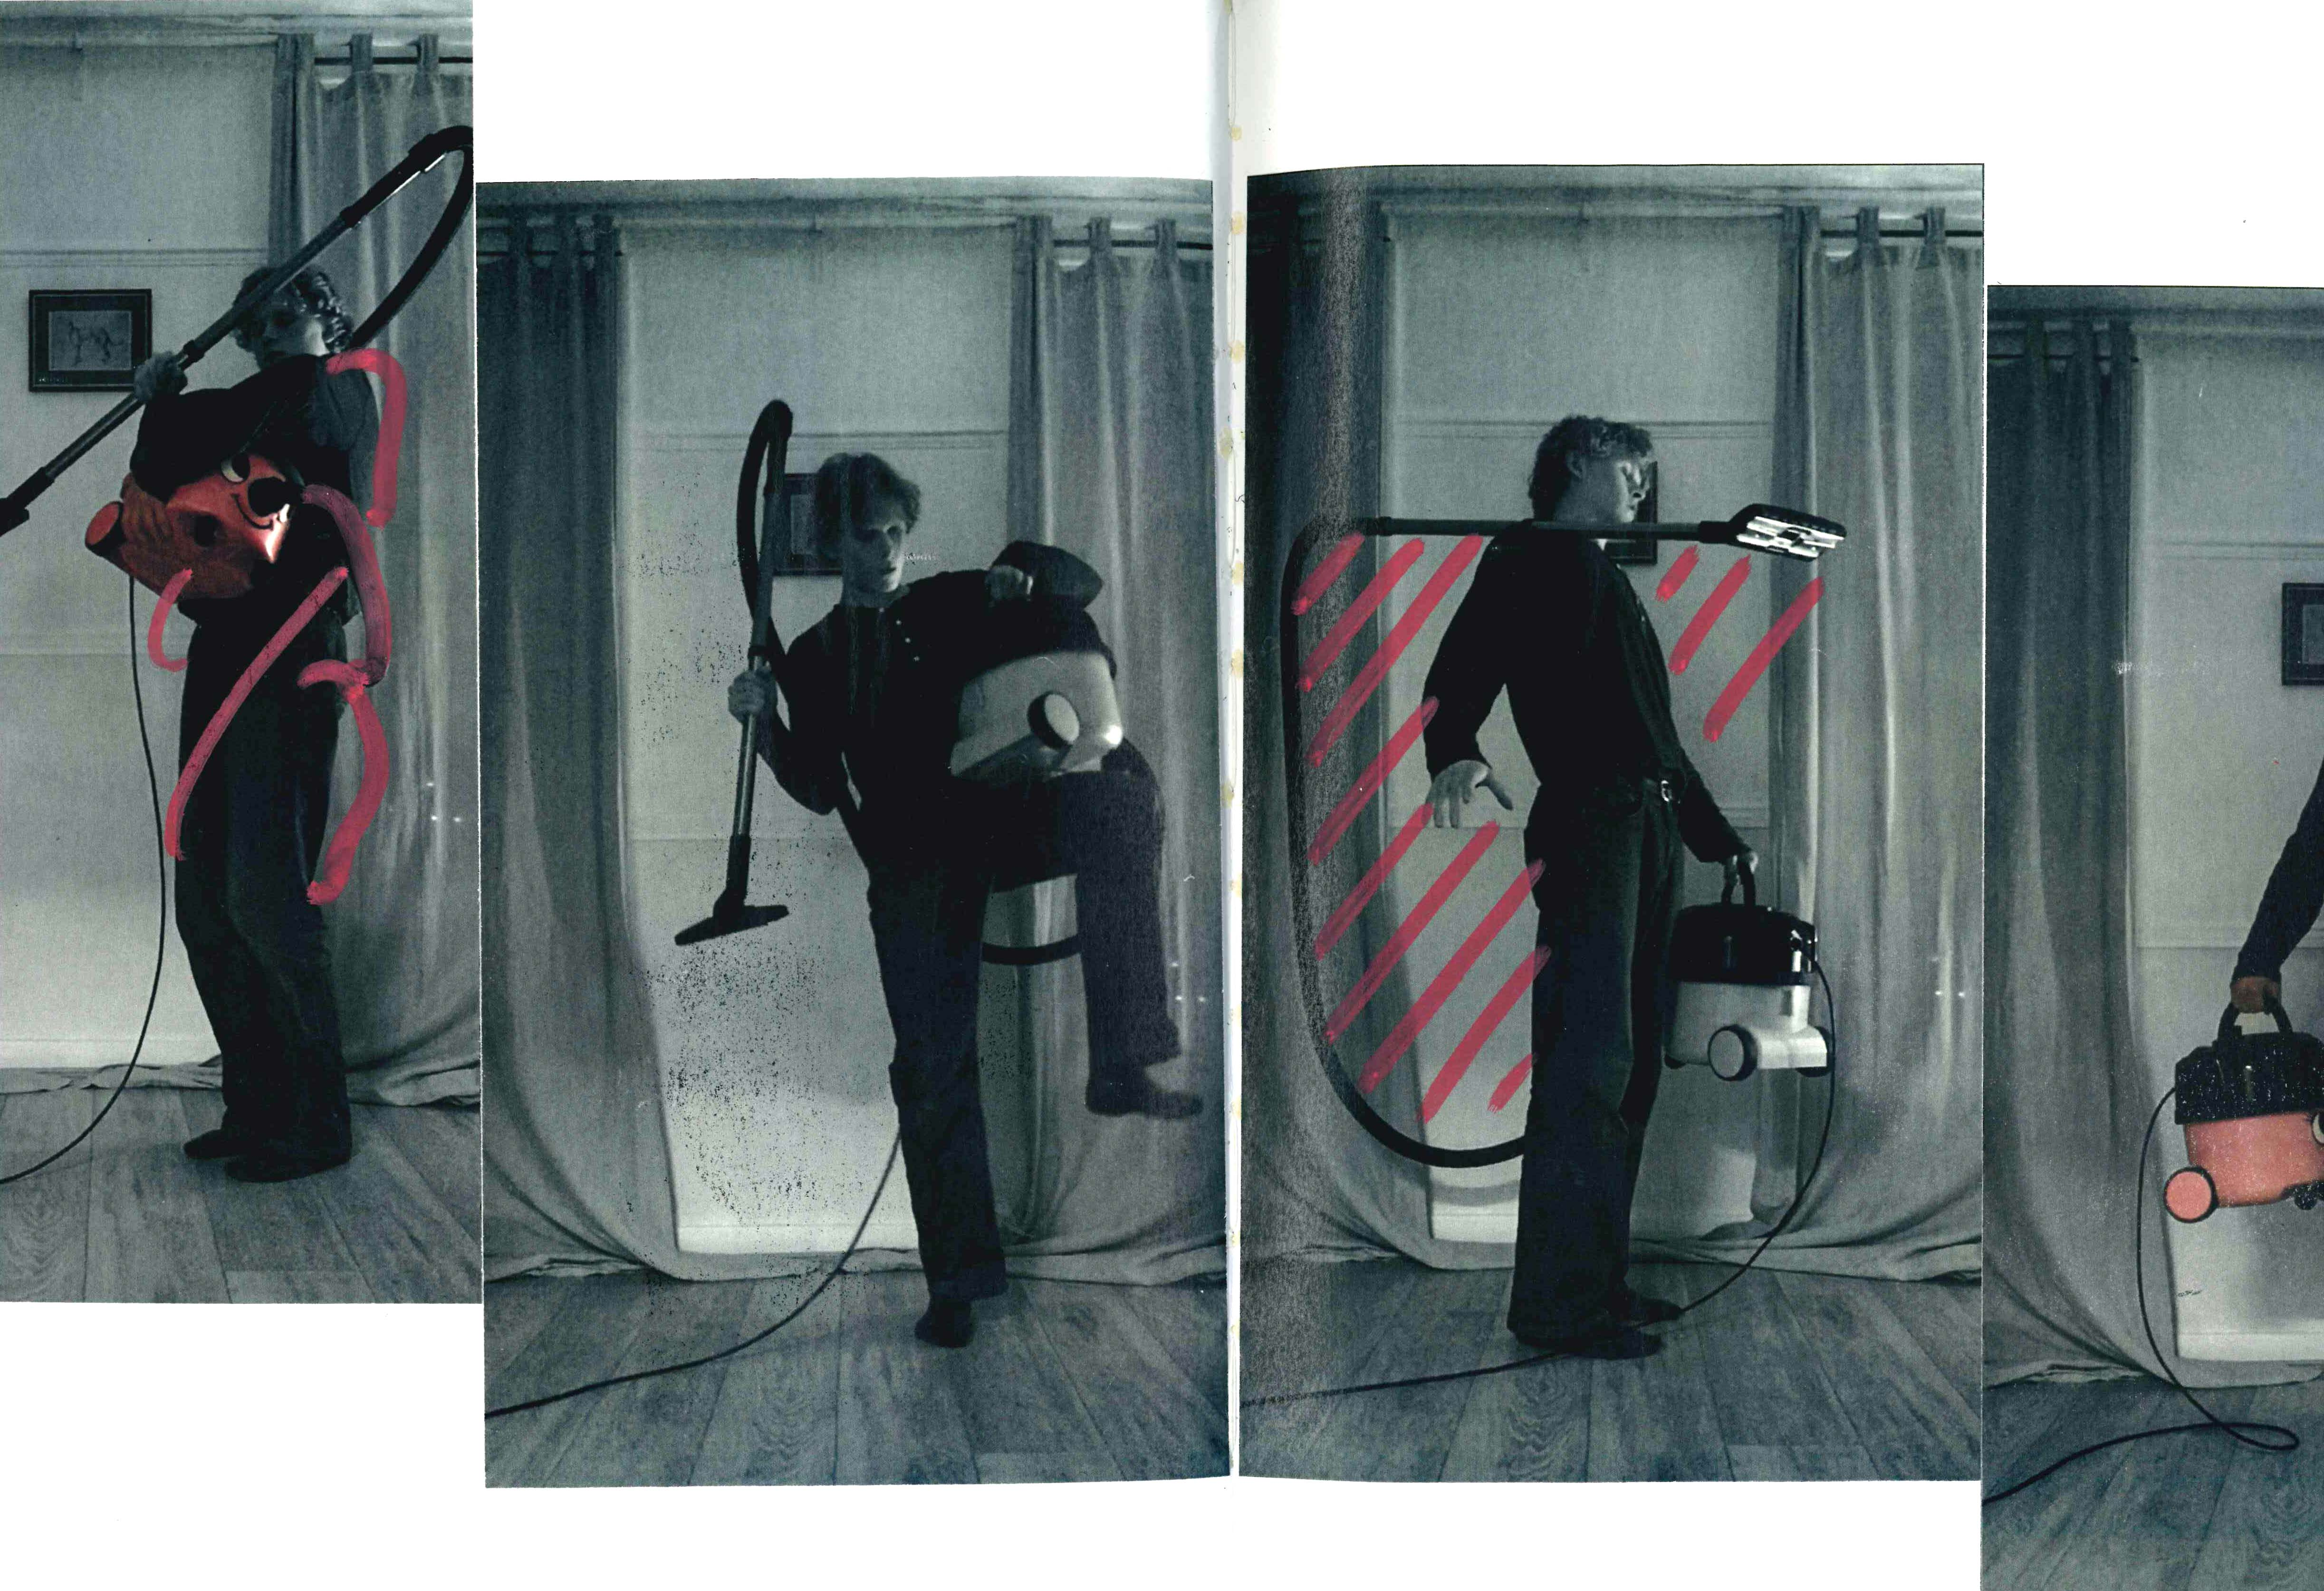 Series of photographs of man wrapped in hoover